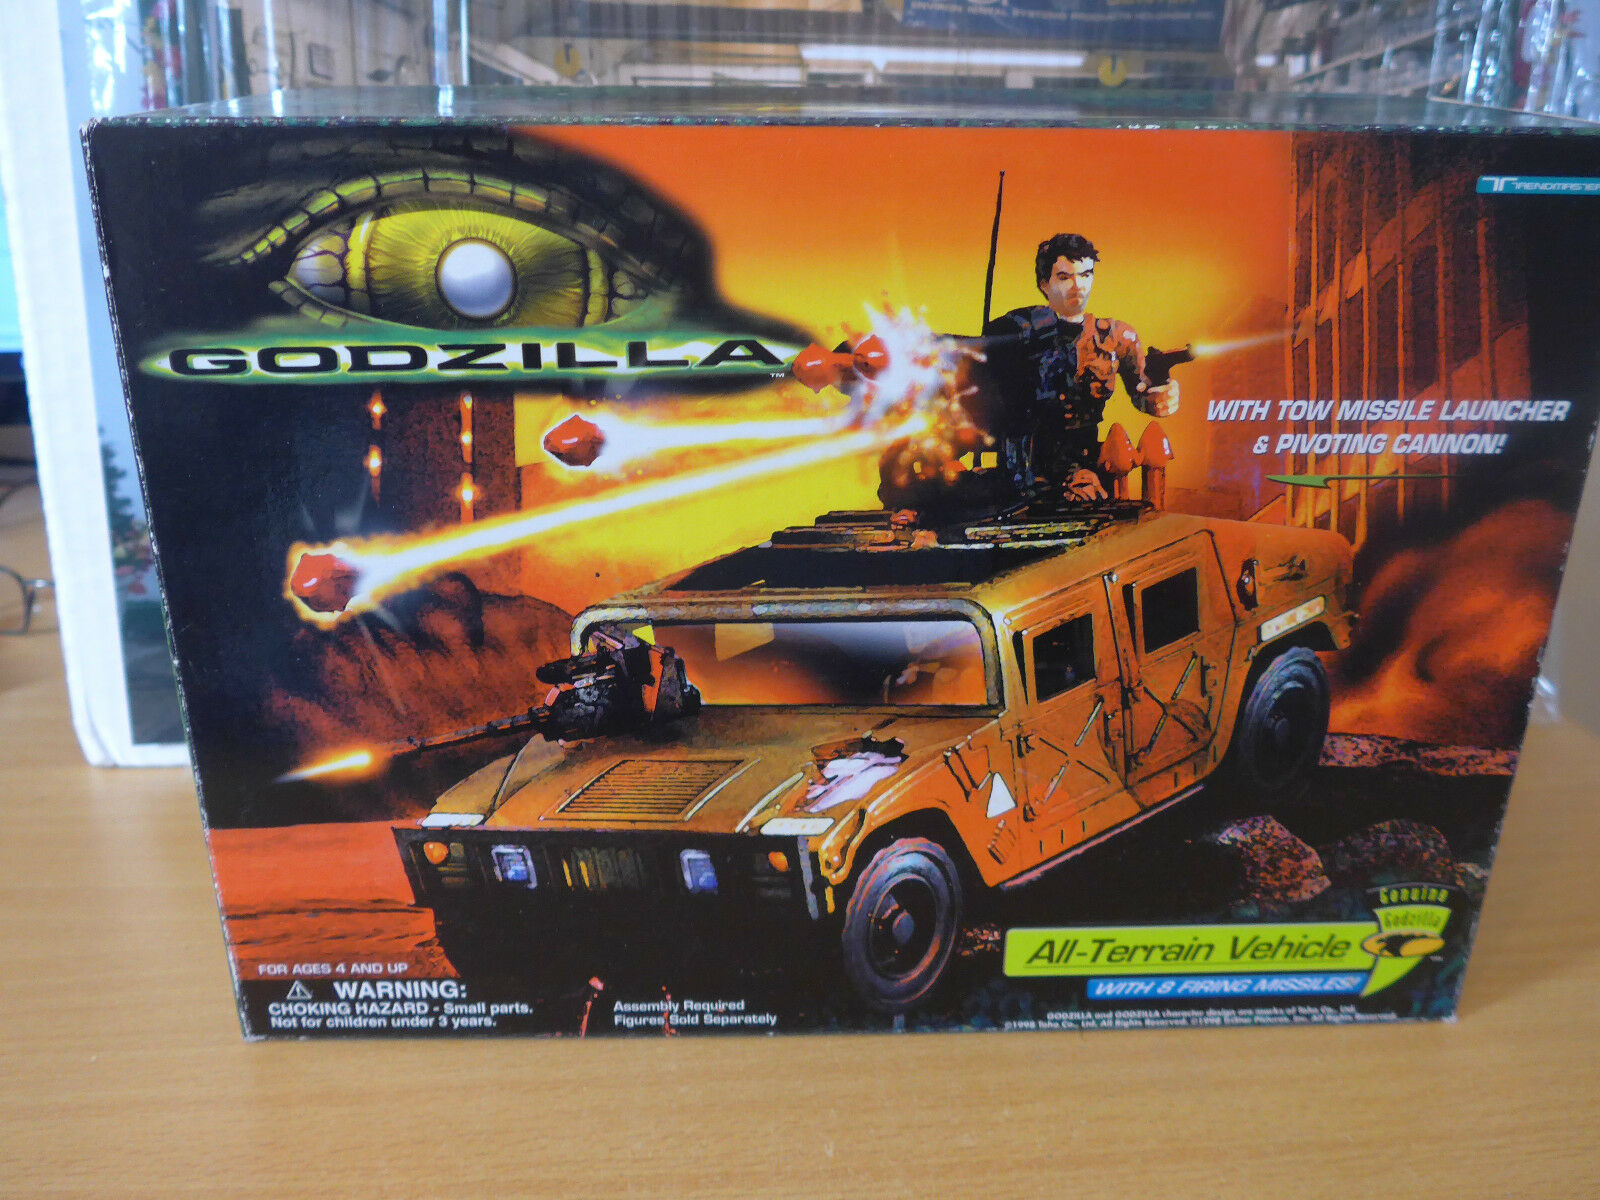 Genuine Godzilla Hummer  All Terrain vehicle with 8 Firing missiles